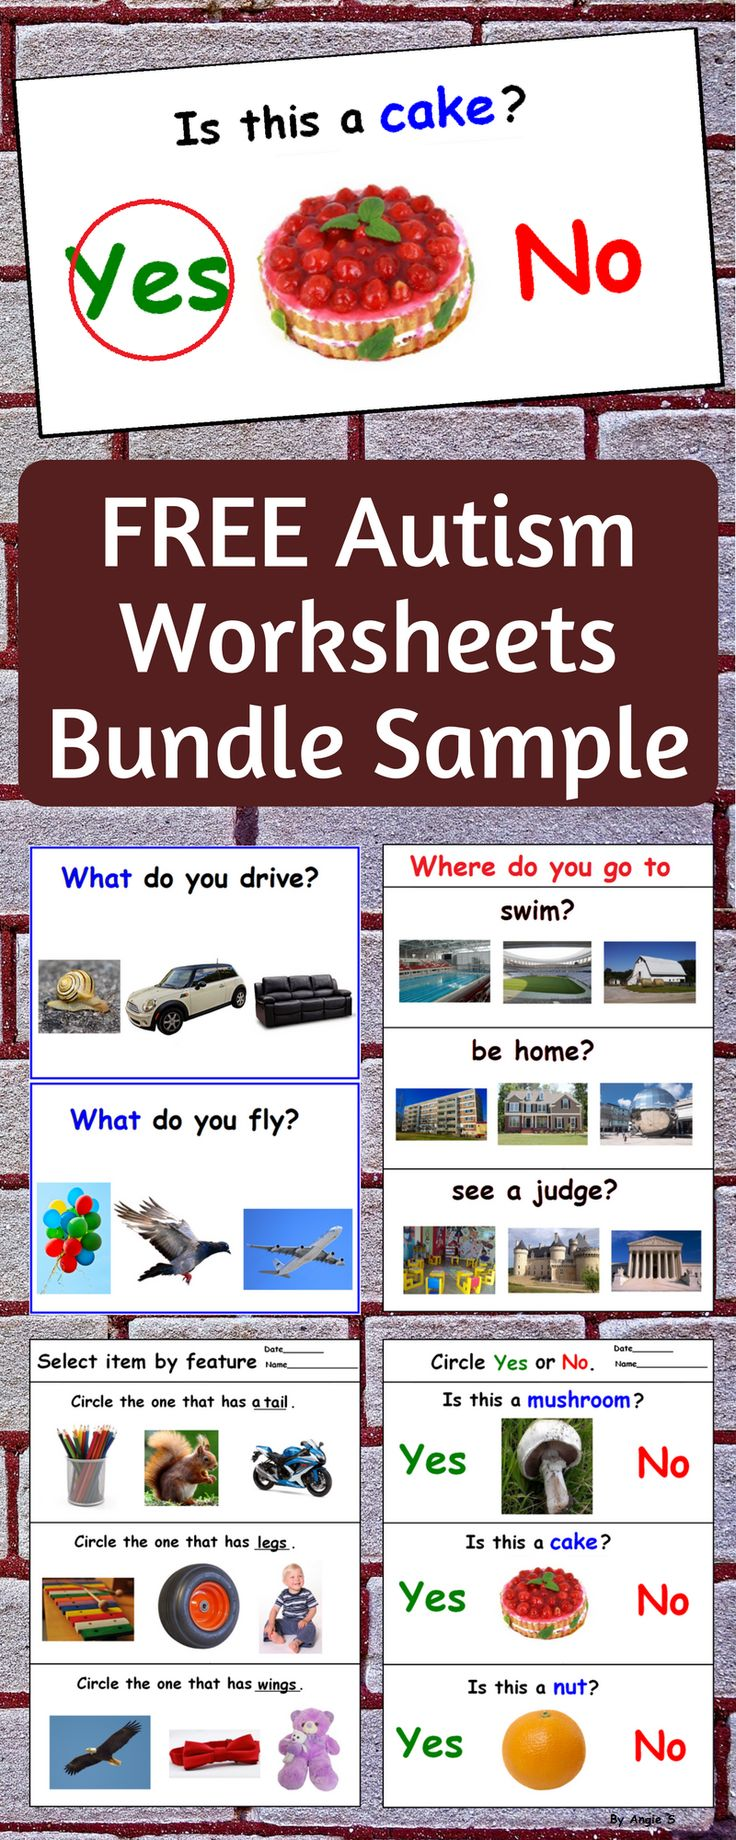 FREE Sample of Wh Questions for Autism Bundle. #autism #free #teacherspayteachers #tpt #worsheets #freeresources #speechtherapy For more resources follow https://www.pinterest.com/angelajuvic/autism-and-special-education-resources-angie-s-tpt/